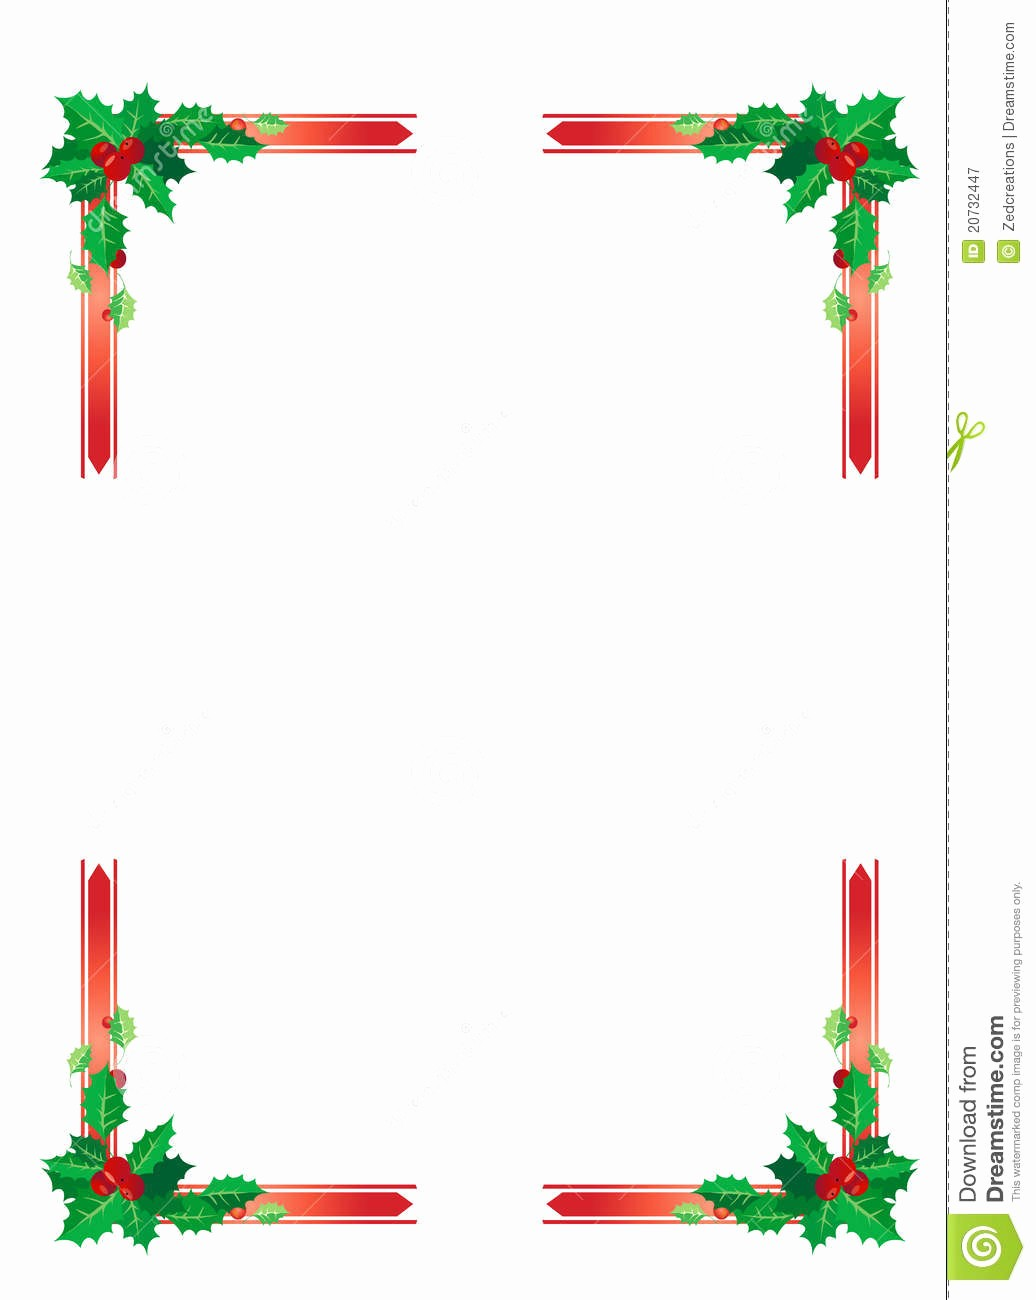 Festive Borders for Word Document Awesome Christmas Border Stock Vector Illustration Of Cranberries